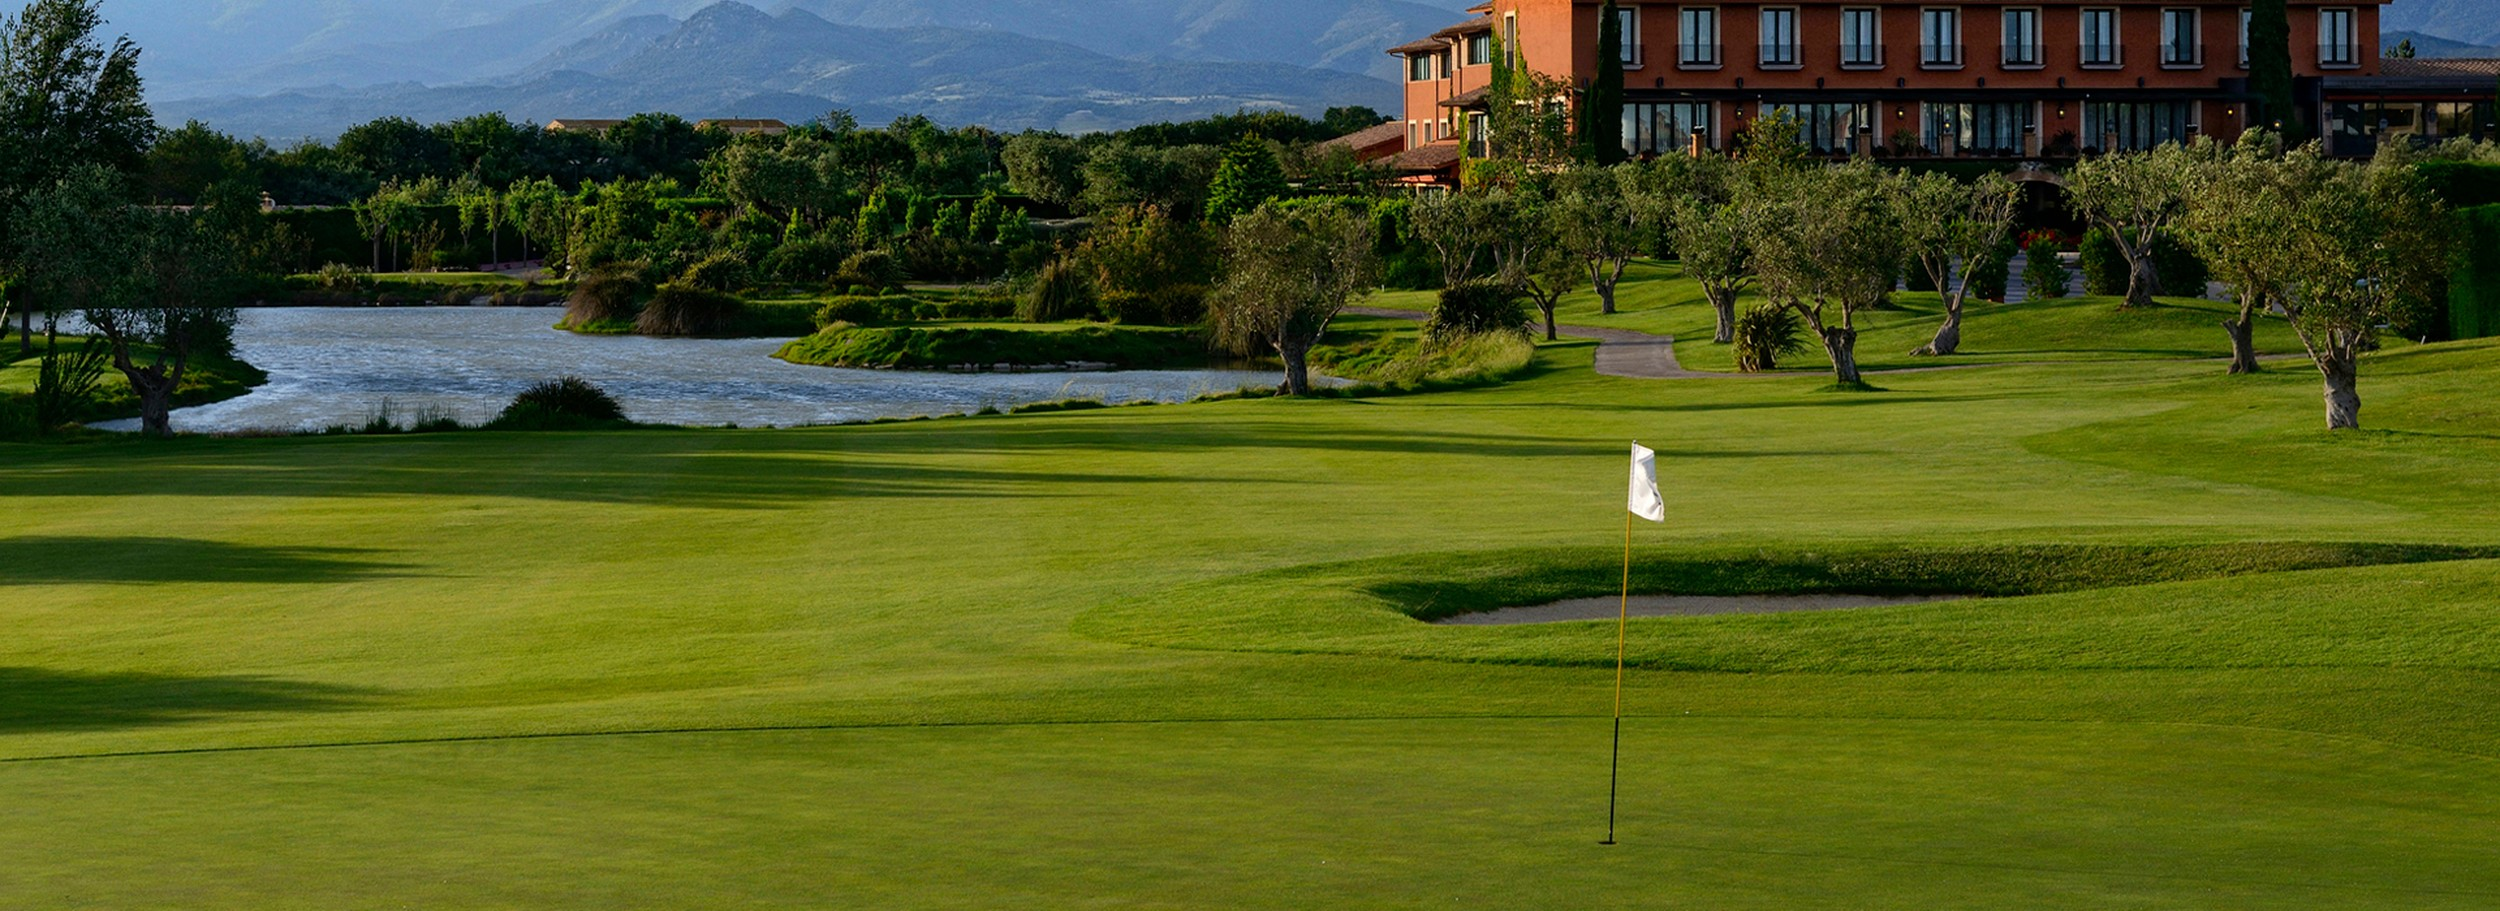 Golf Club Peralada, Spain